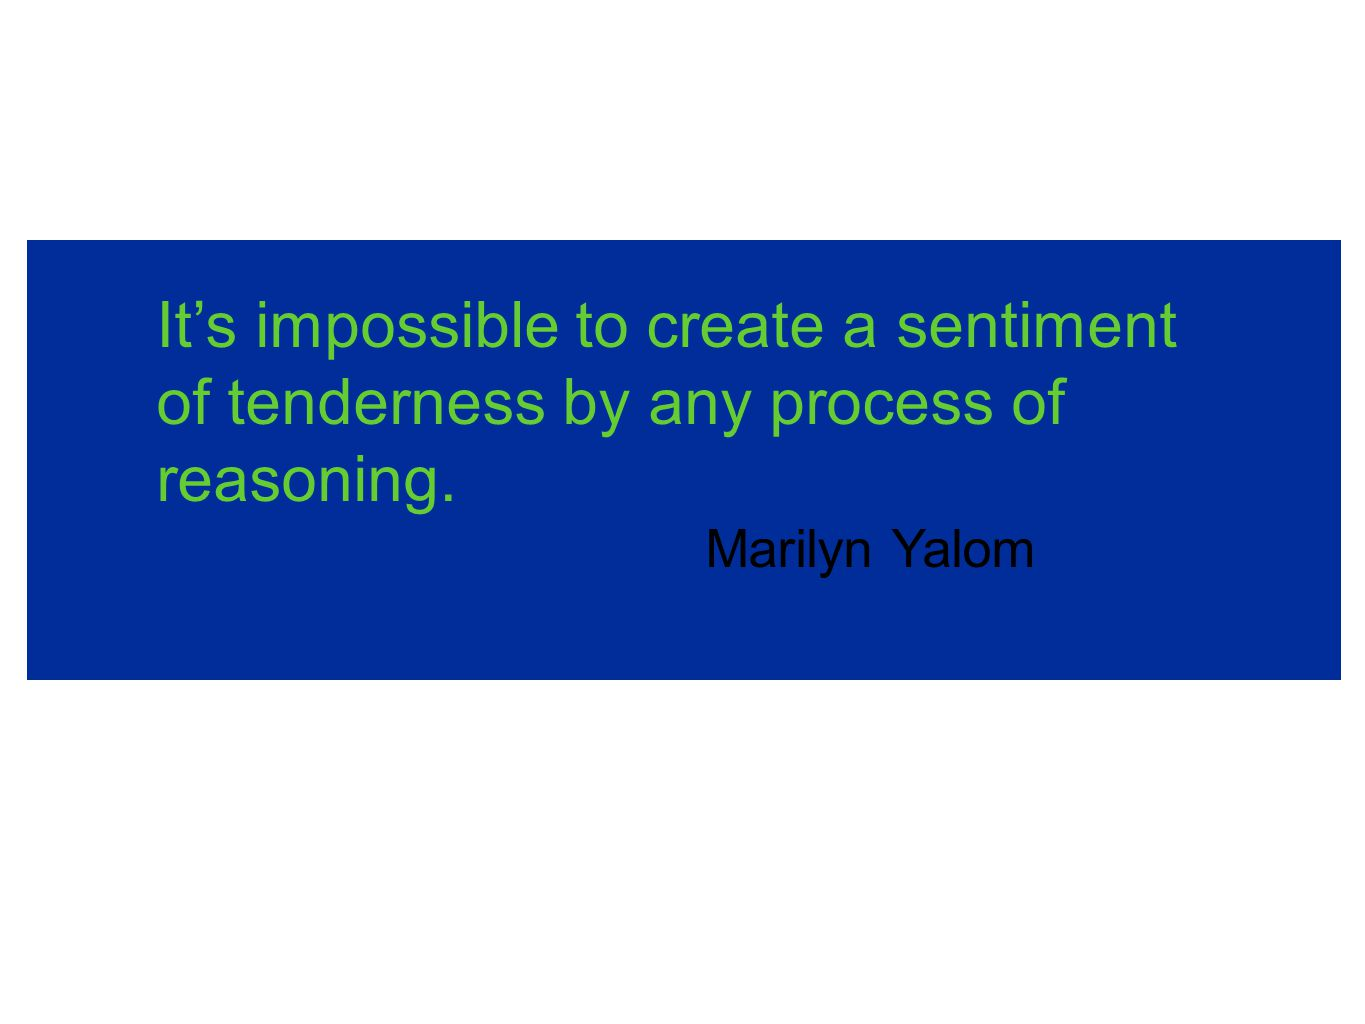 It's impossible to create a sentiment of tenderness by any process of reasoning. Marilyn Yalom